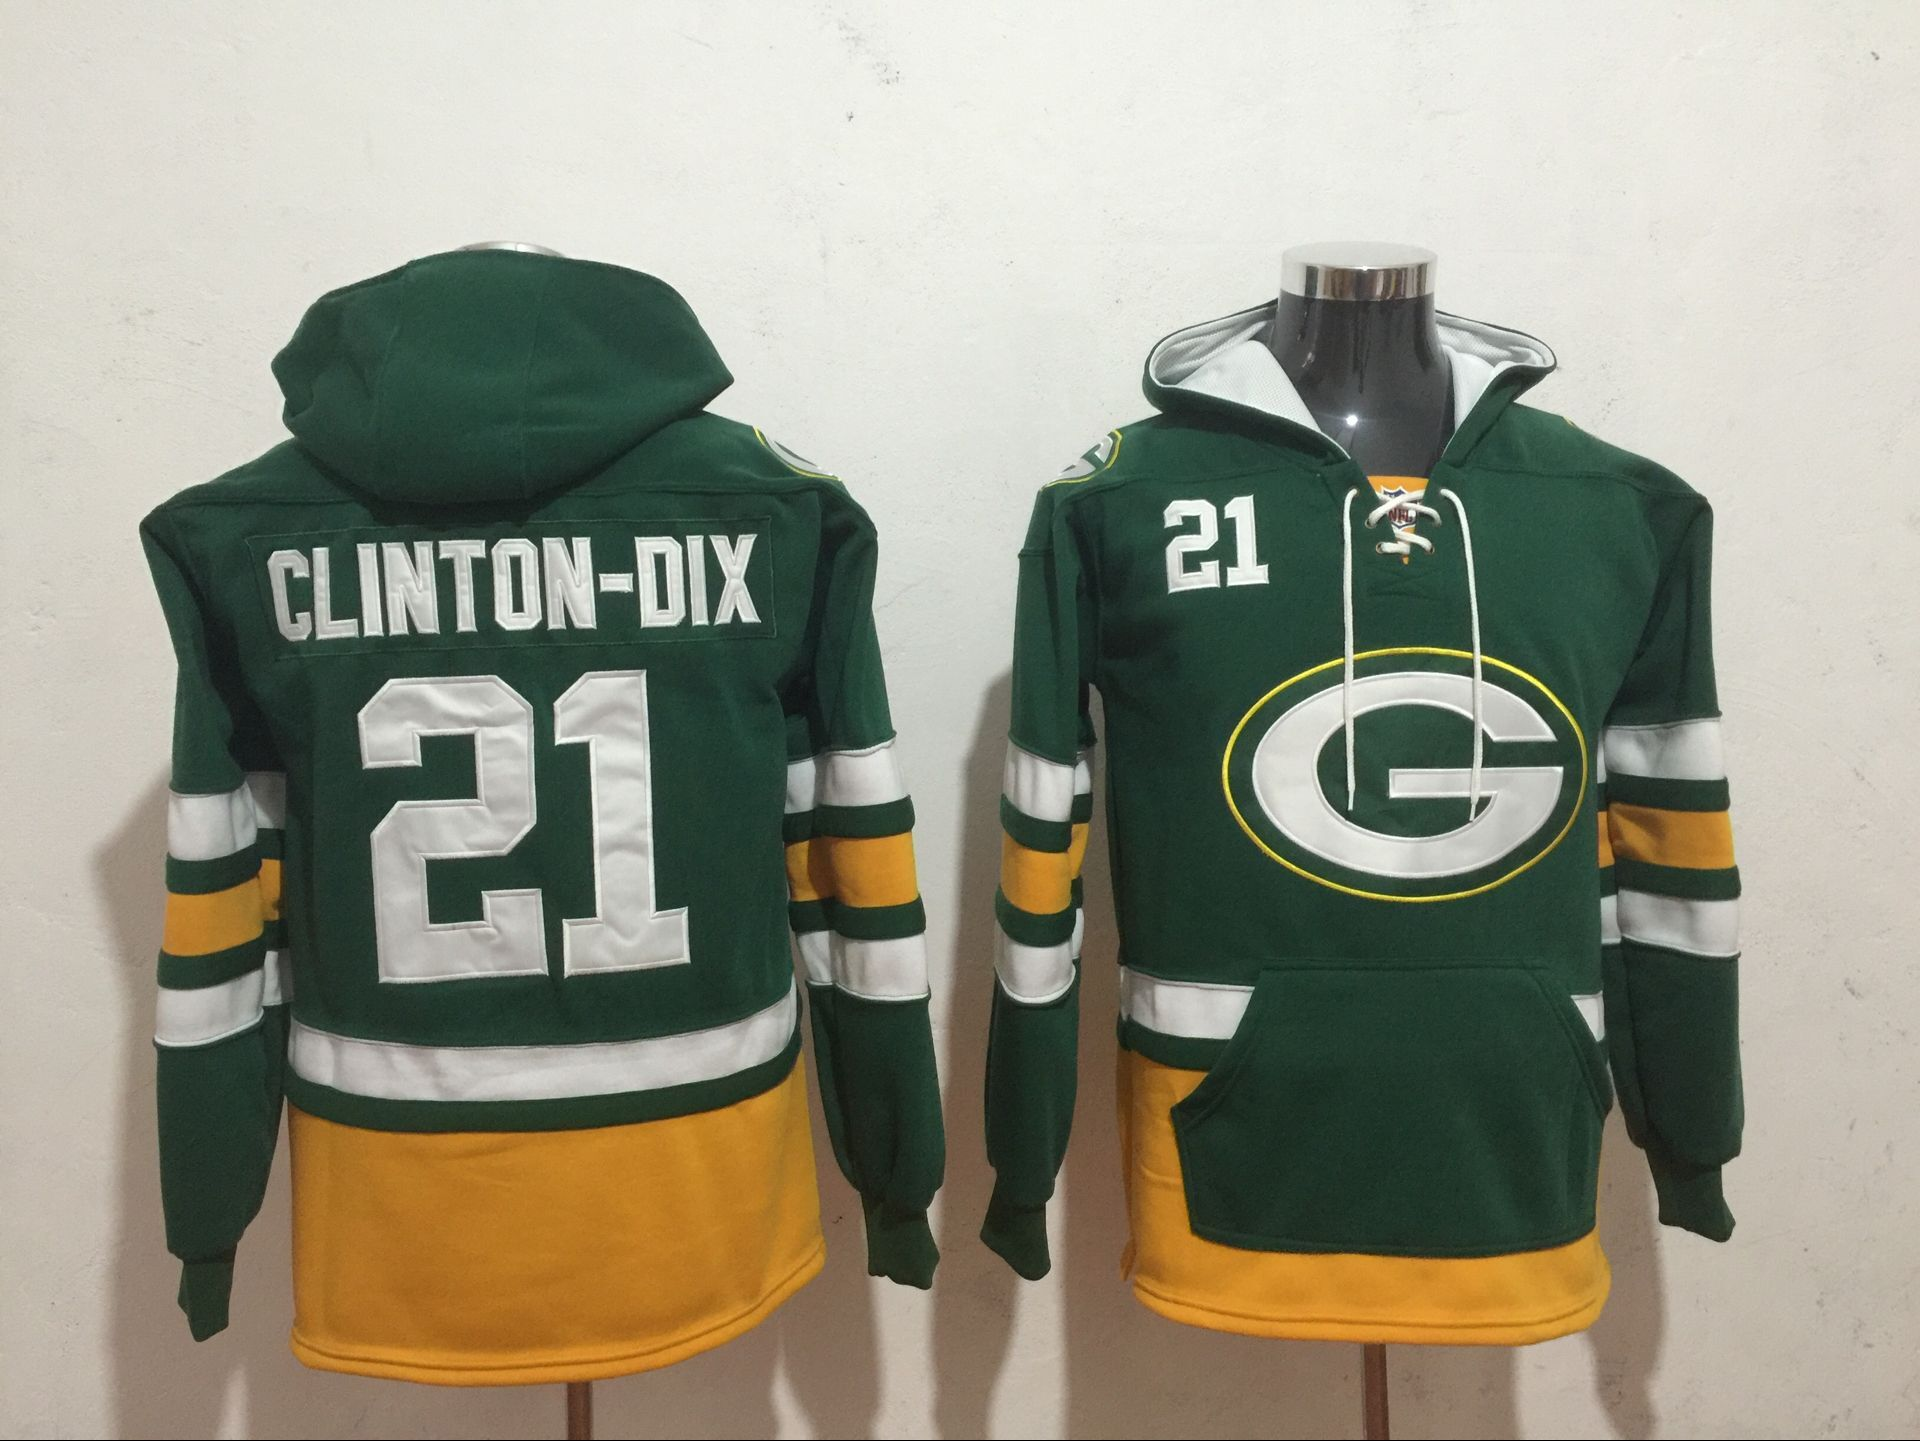 Men NFL Nike Green Bay Packers 21 Clinton Dix Green Sweatshirts